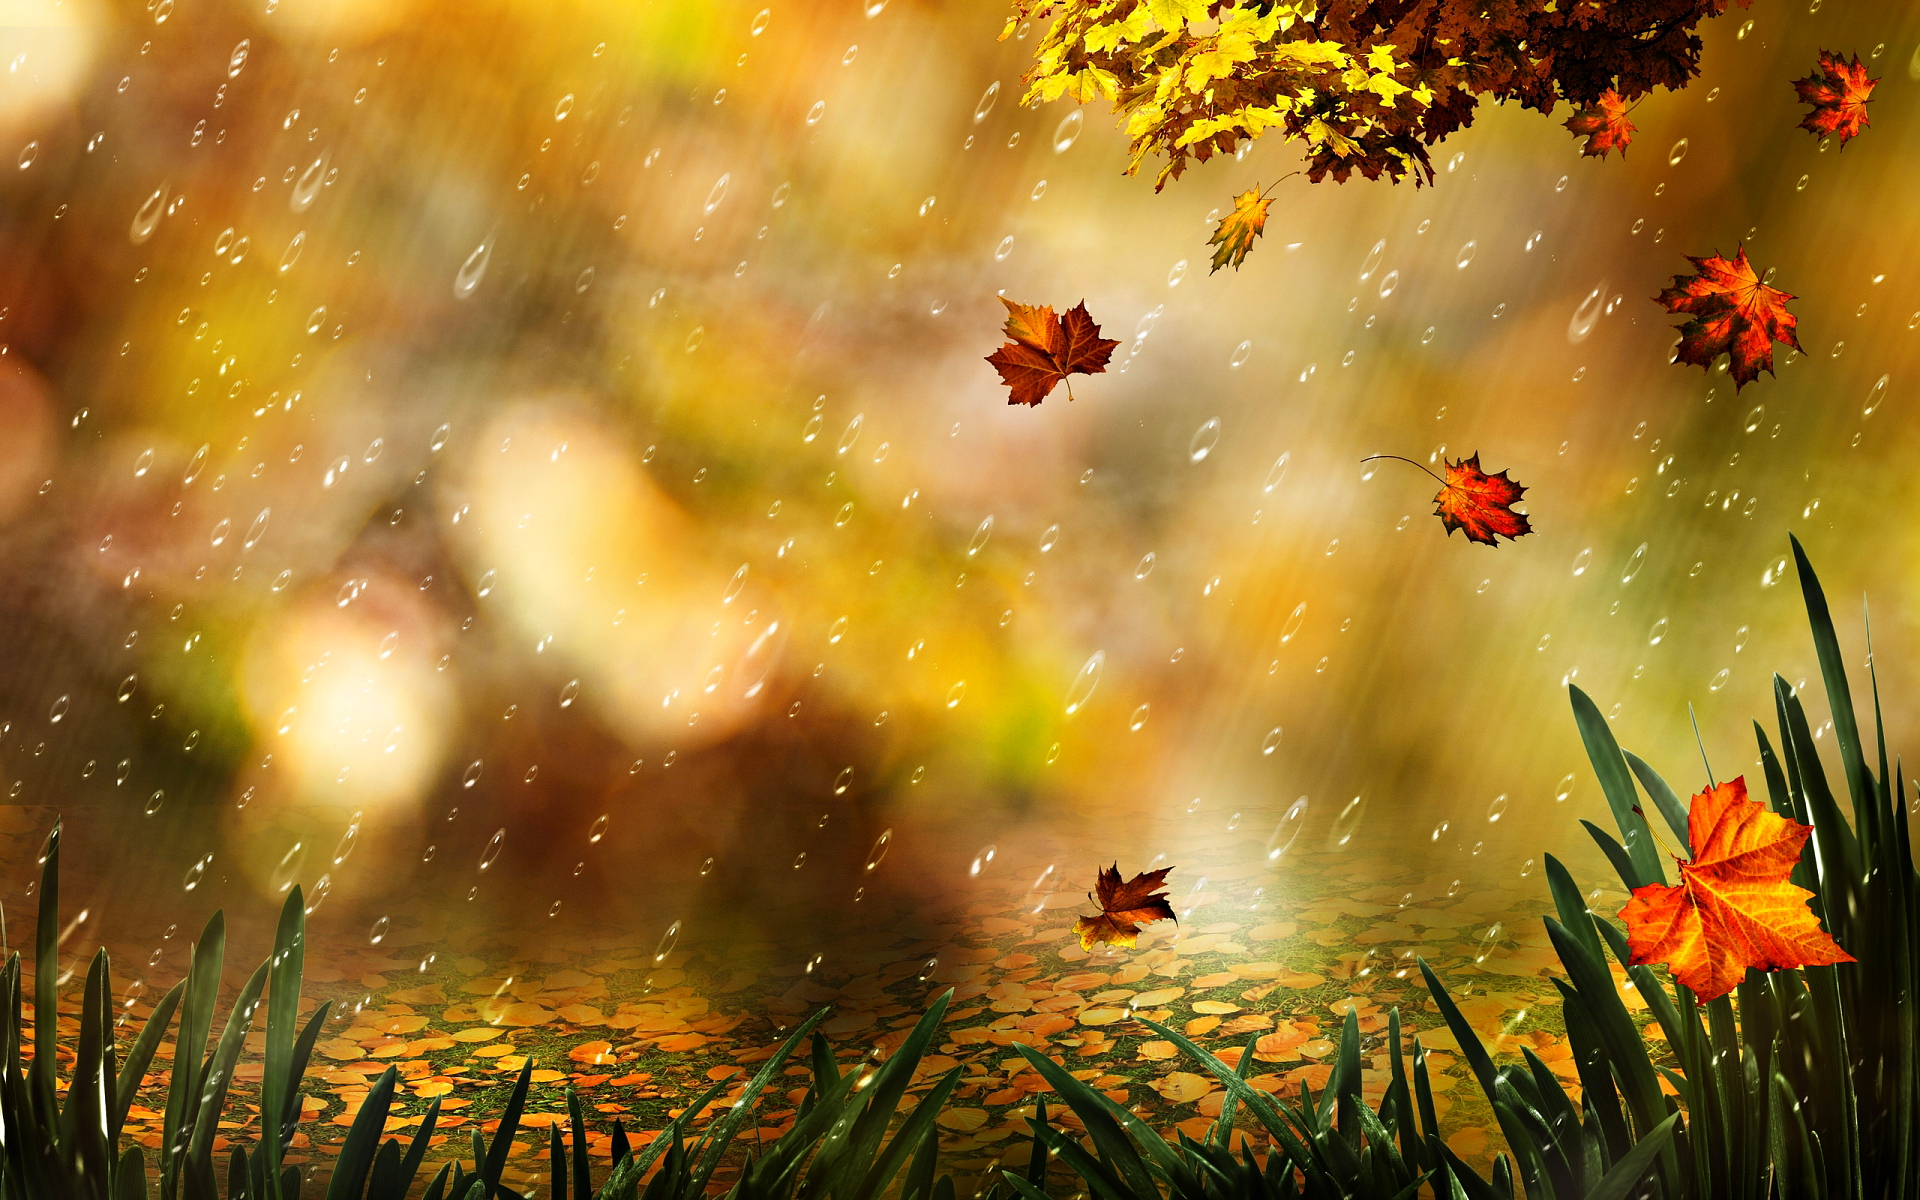 Autumn Leaf Artwork Wallpaper High Definition High